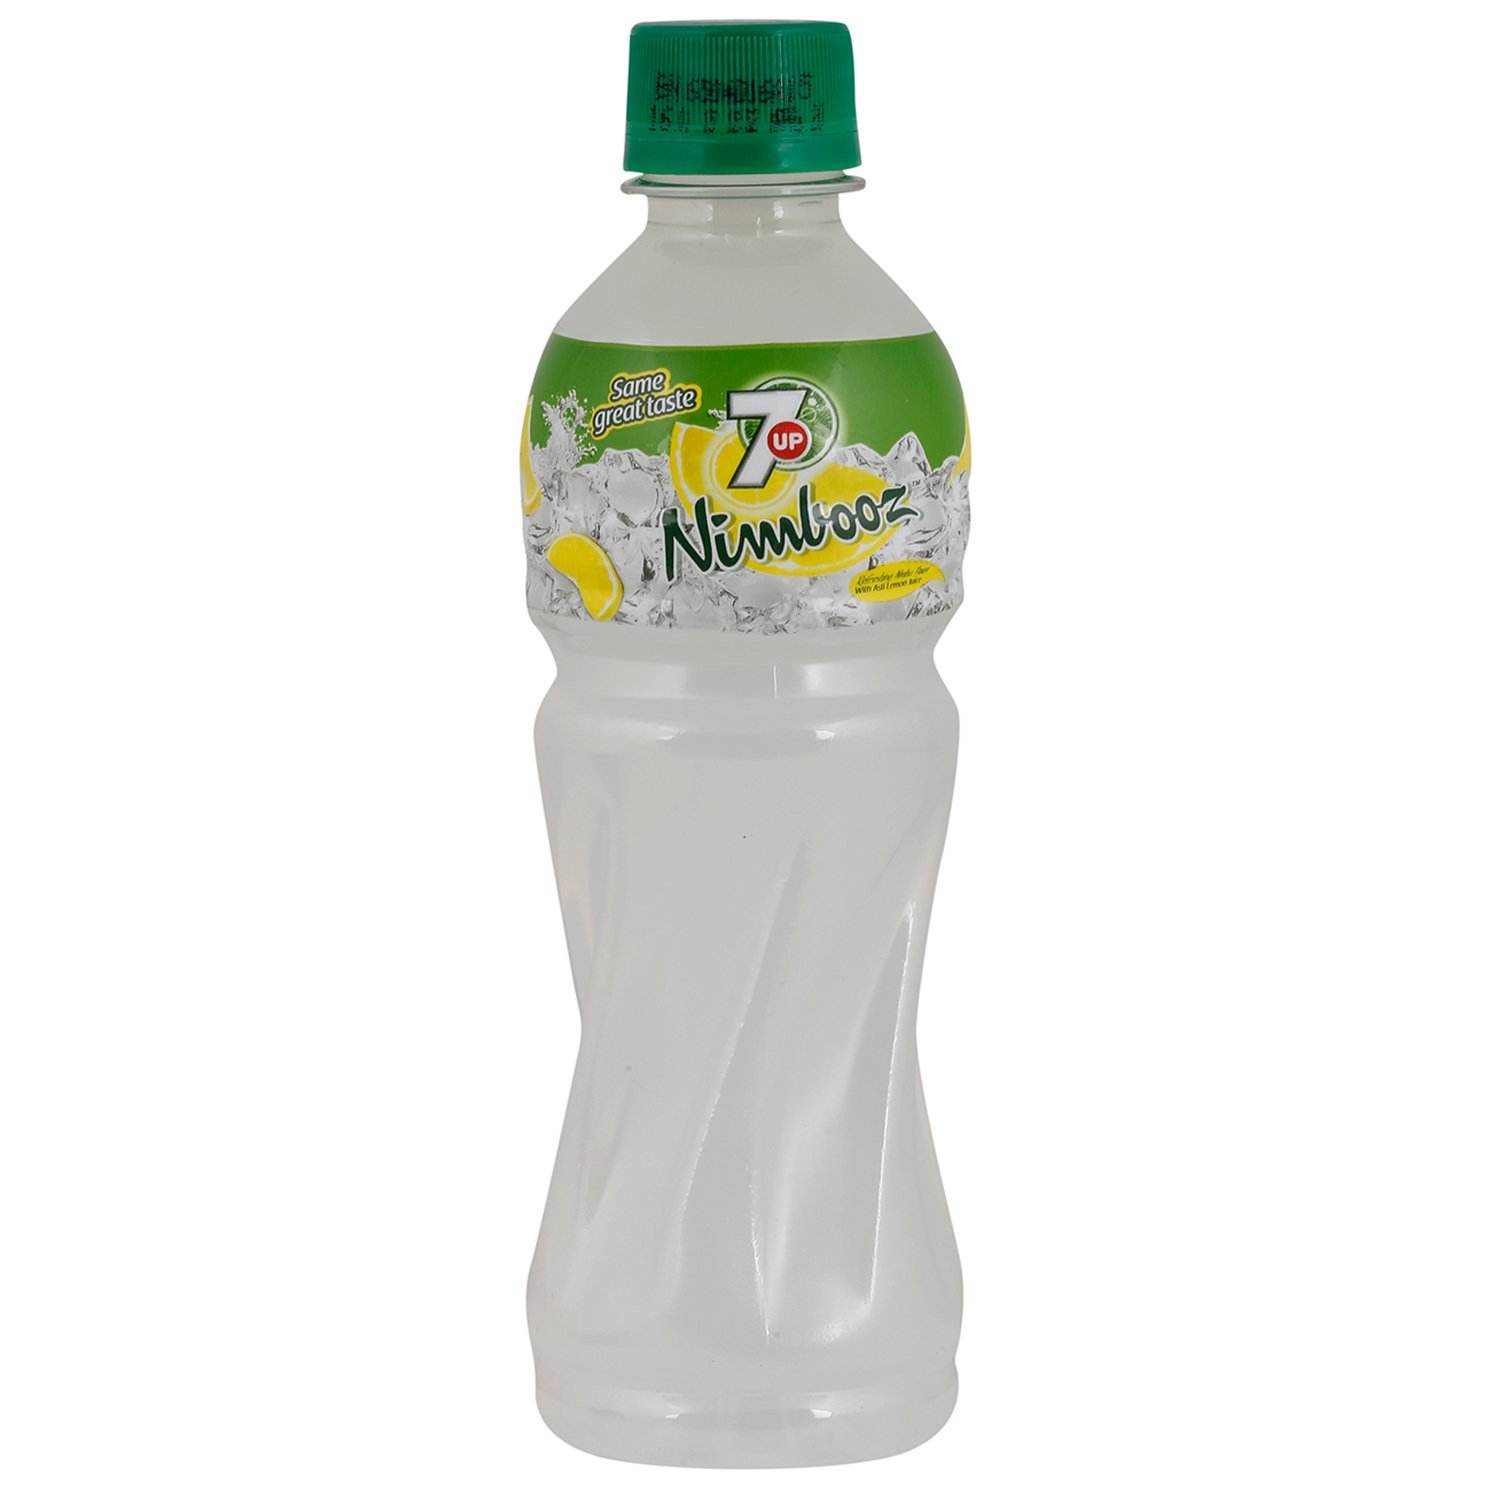 7Up Nimbooz 350ml. Bottle